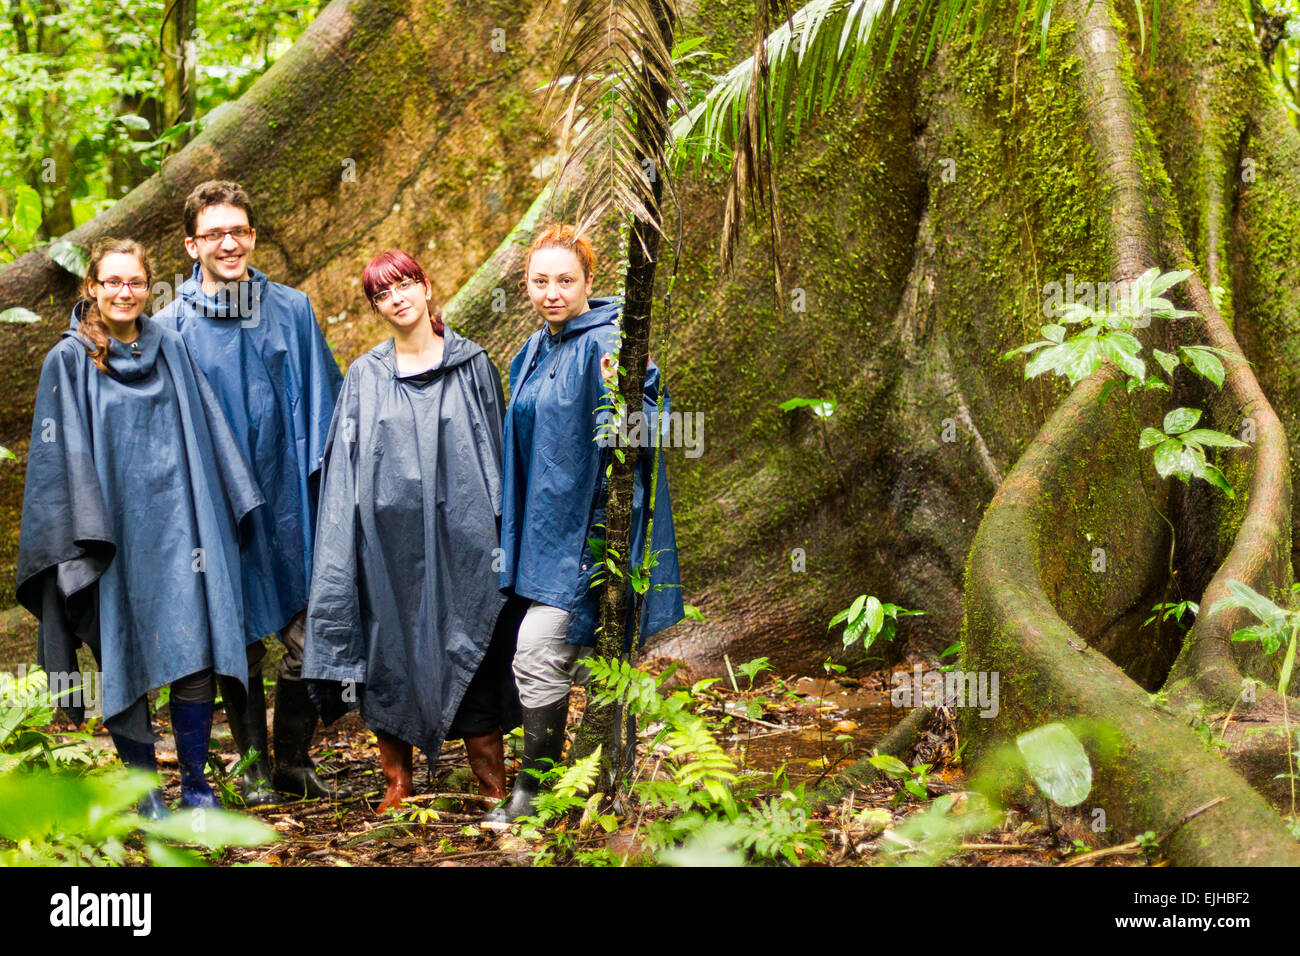 Group Of Four Tourists In Amazon Jungle Against Huge Ceiba Tree Rain Ponchos And Rubber Boots Are A Must In This - Stock Image